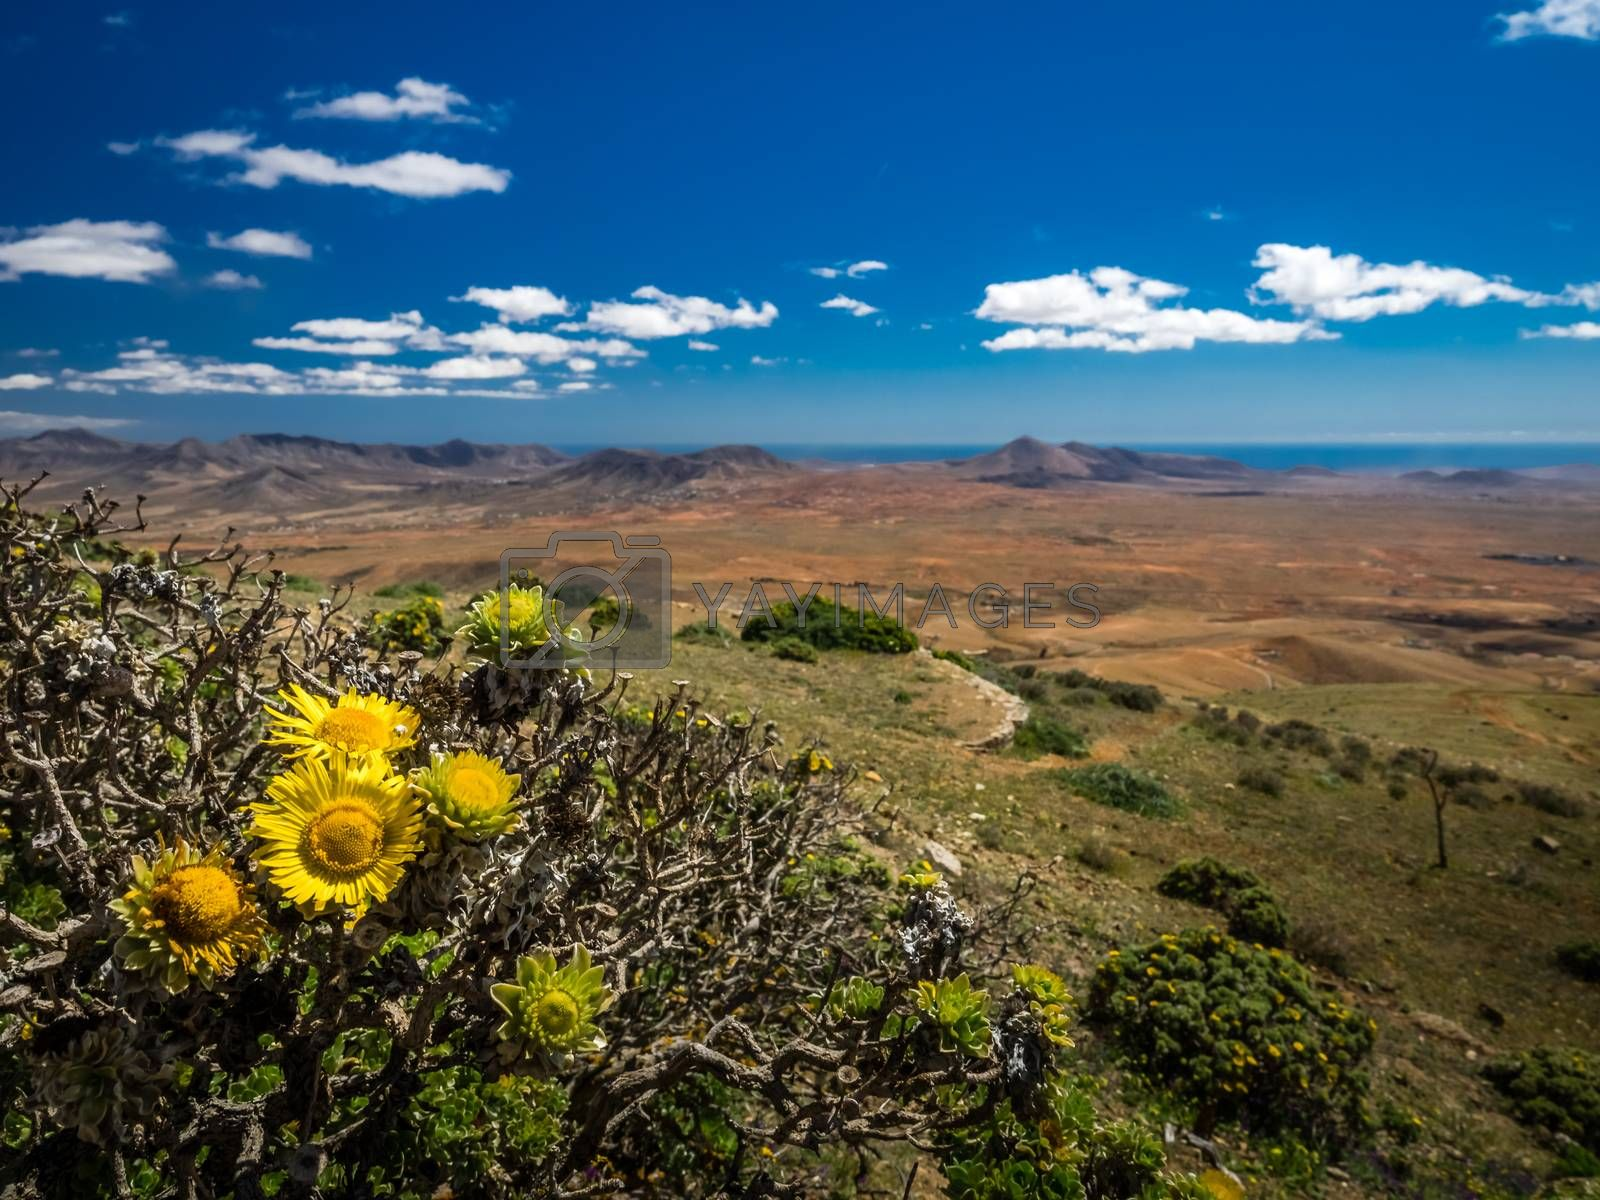 Wide angle view of the landscape of Fuerteventura as seen from the Morro Velosa viewpoint, Canary Islands, Spain